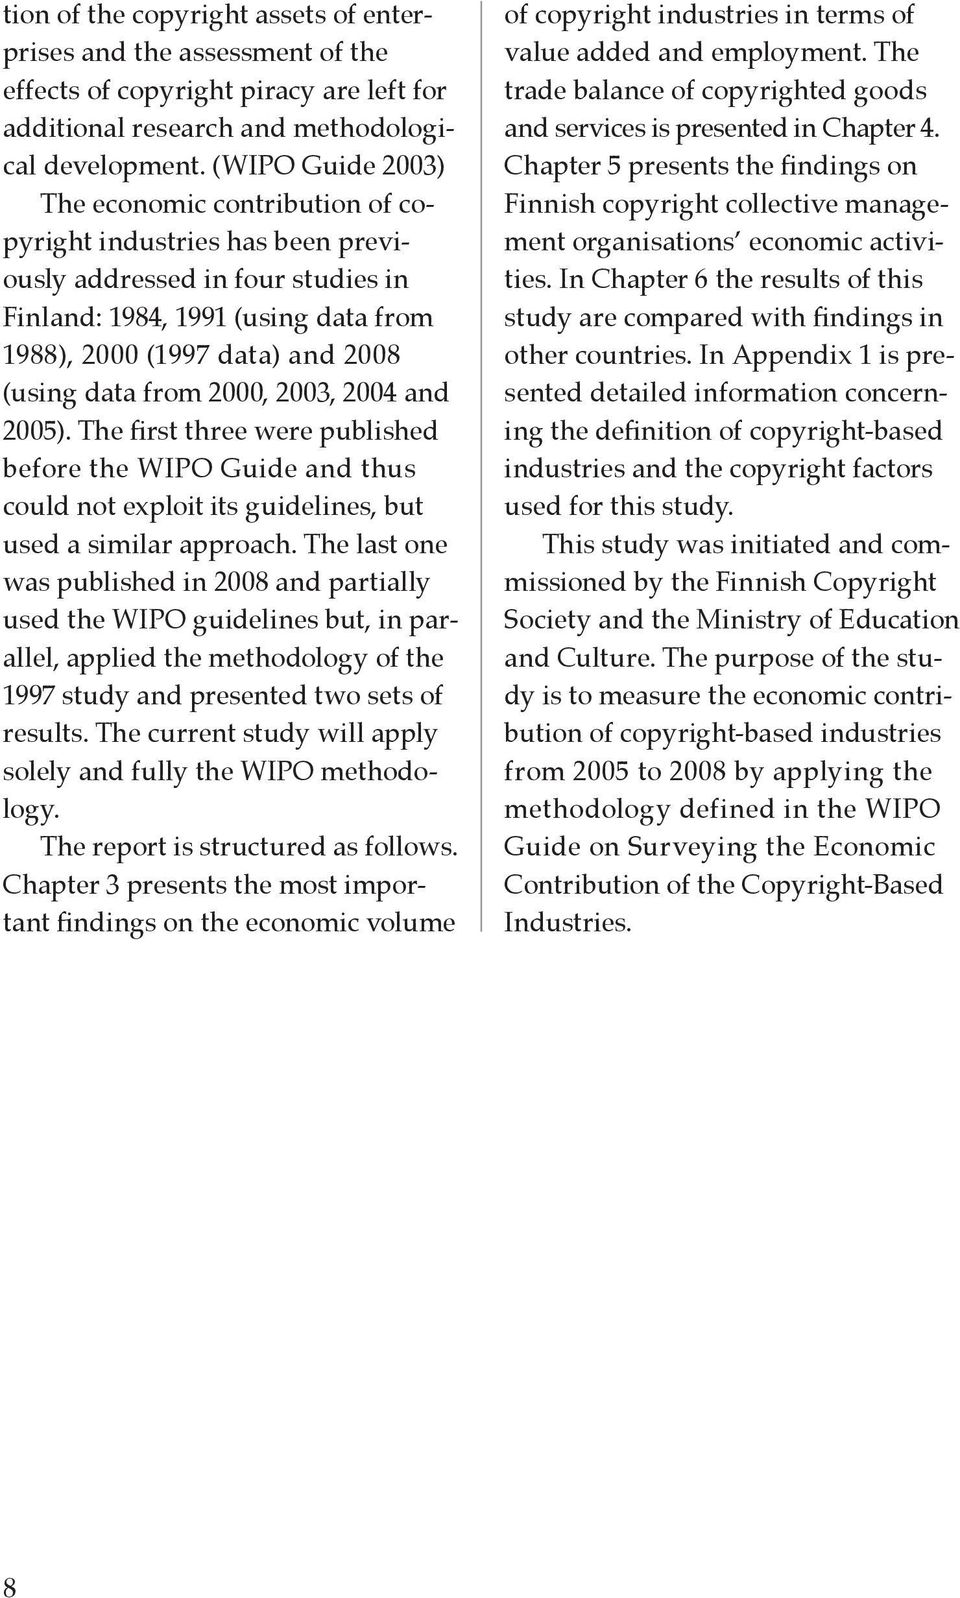 from 2000, 2003, 2004 and 2005). The first three were published before the WIPO Guide and thus could not exploit its guidelines, but used a similar approach.